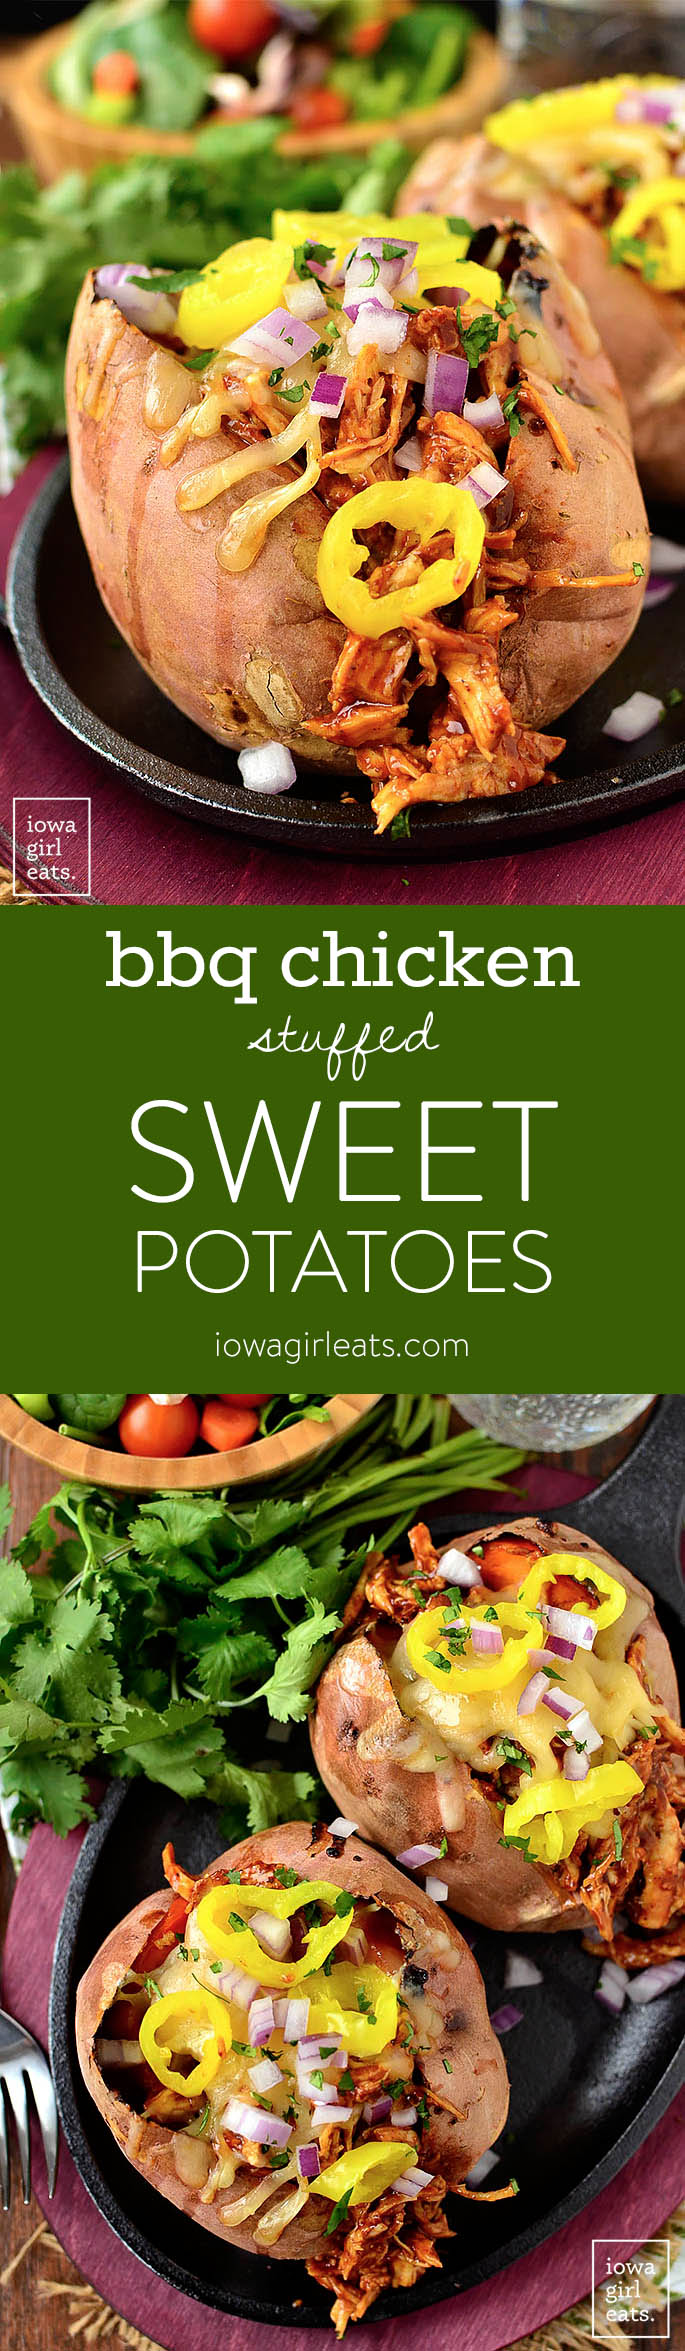 BBQ Chicken Stuffed Sweet Potatoes call for just 5 main ingredients and are insanely delicious. Leftovers are just as tasty too!   iowagirleats.com